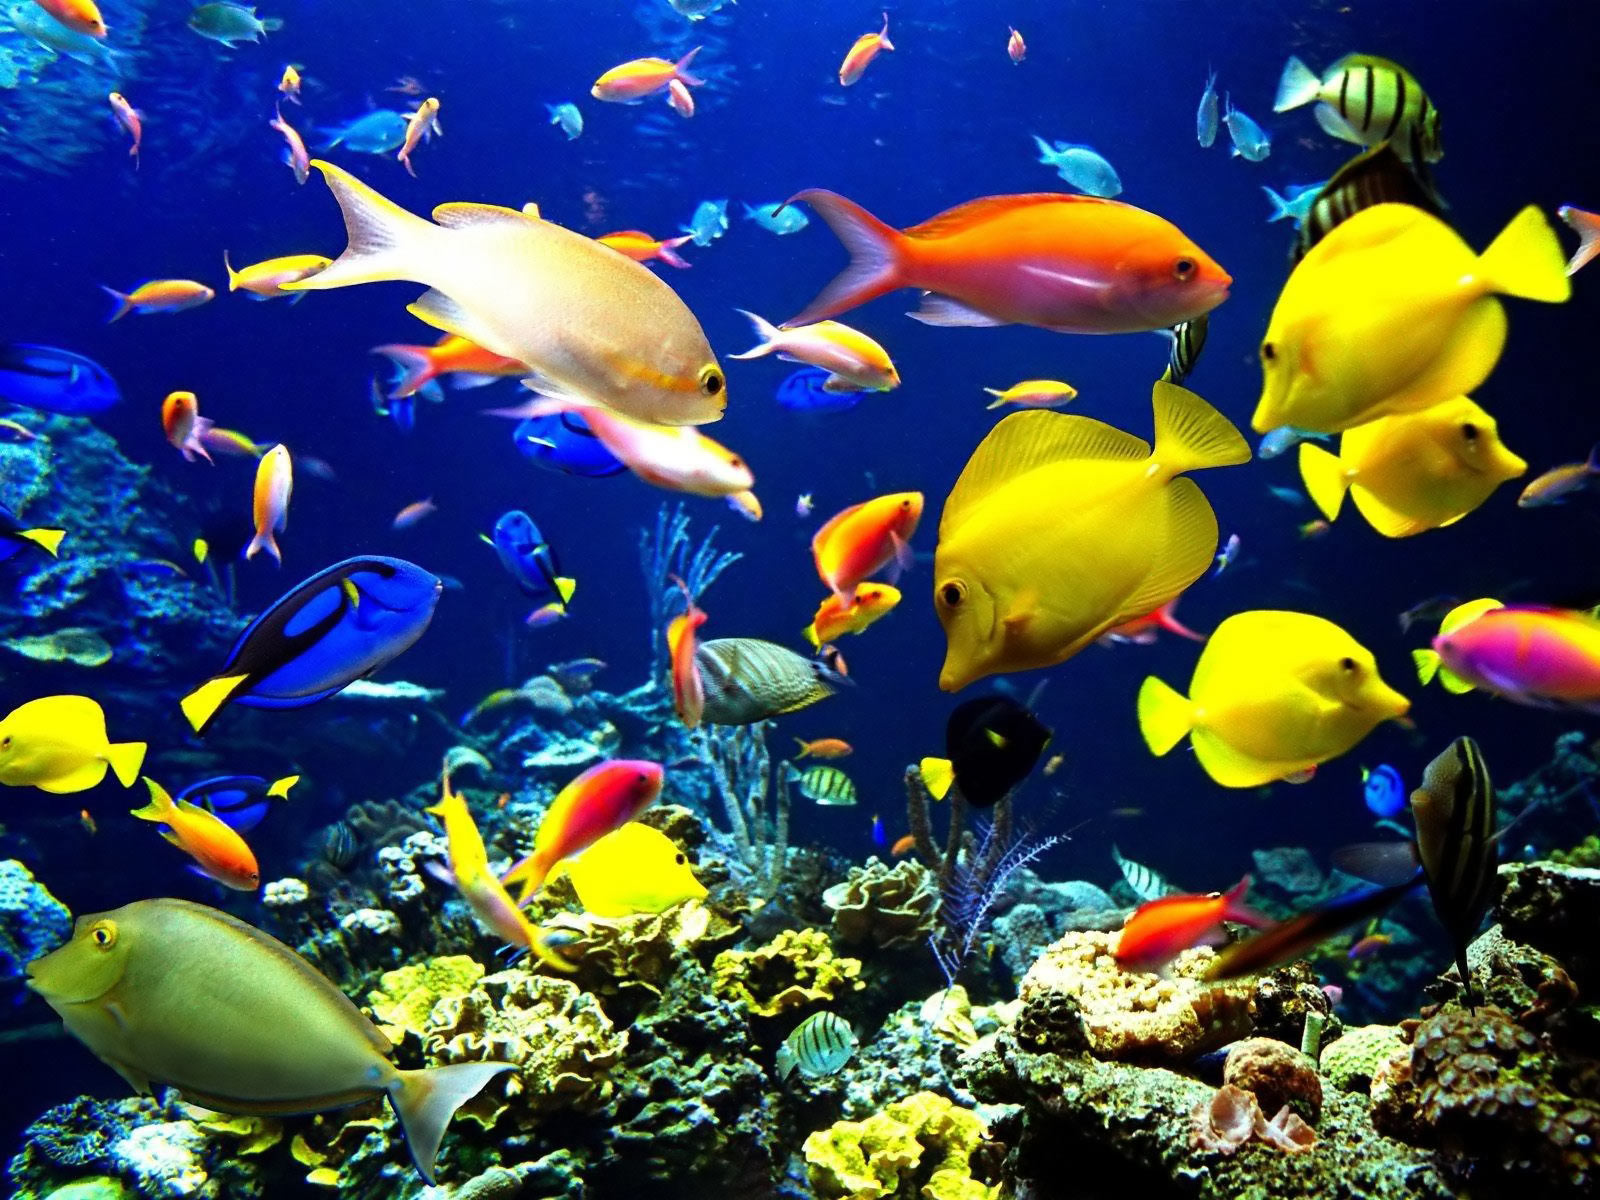 Download Android Live Fish Wallpaper 1600x1200 Full HD 1600x1200